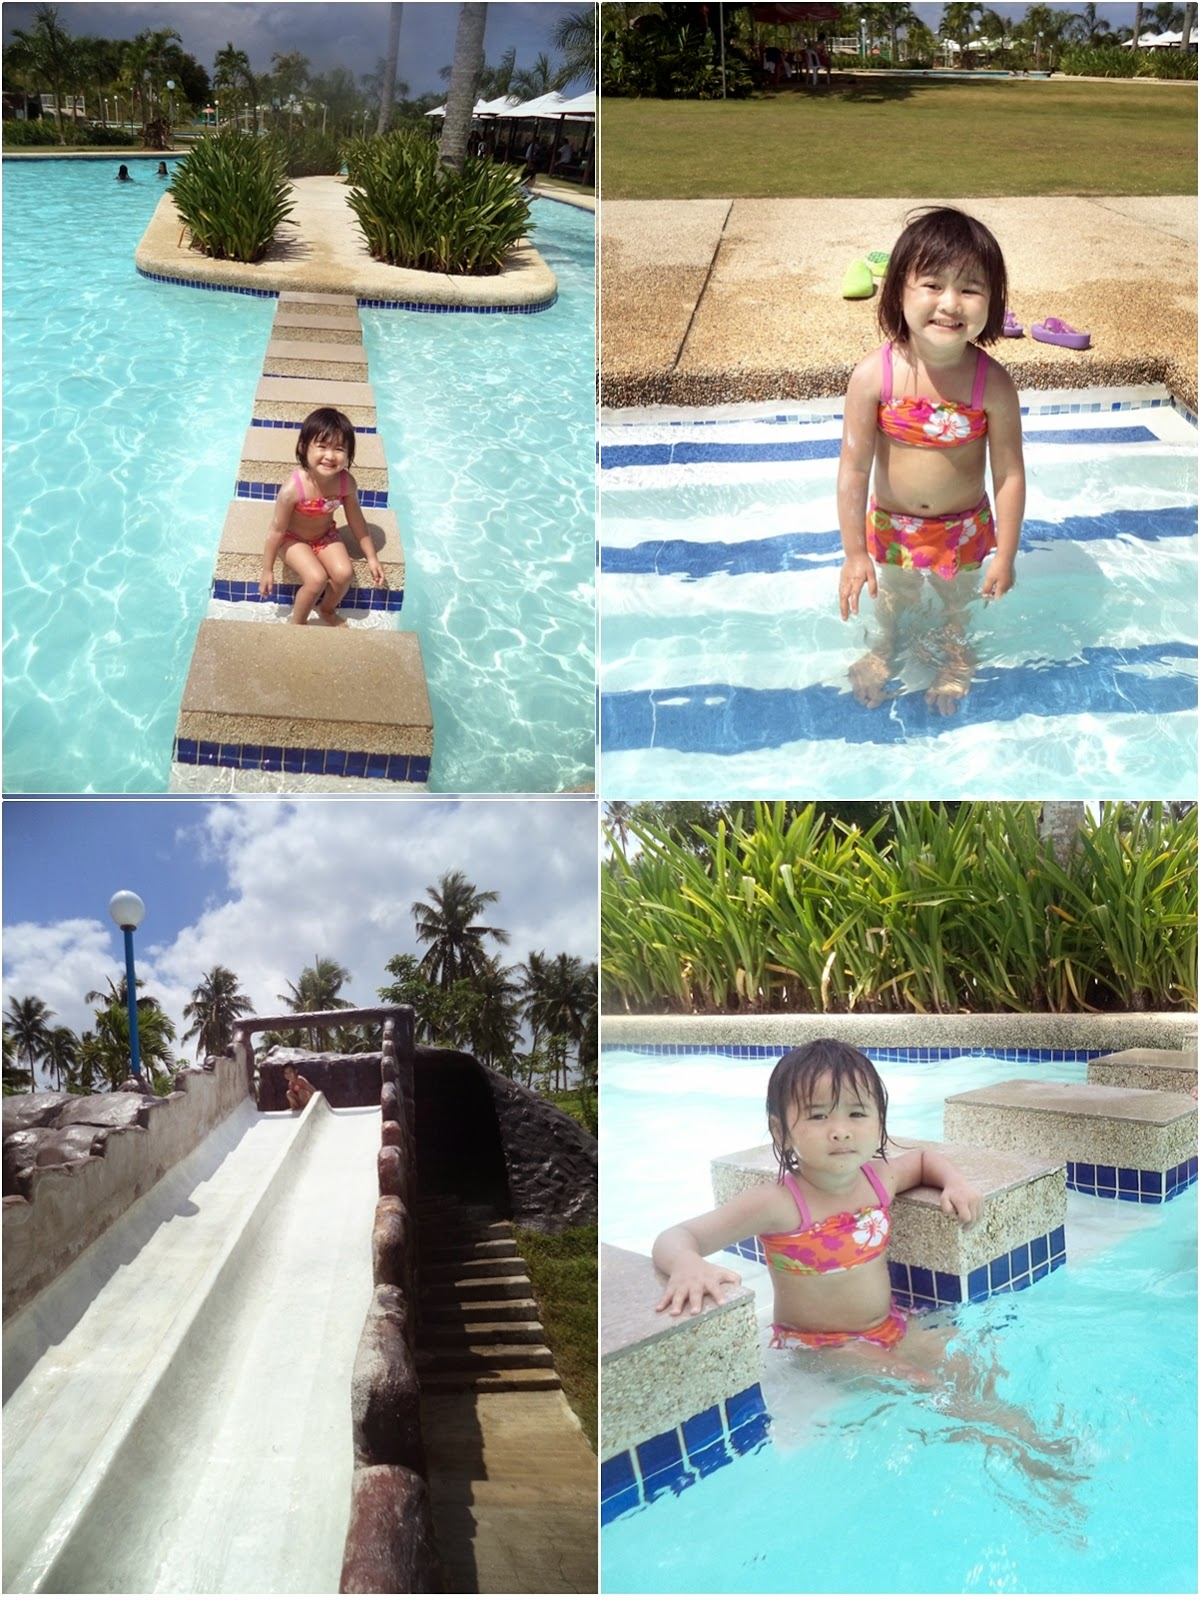 The Ranch Resort, Toledo City